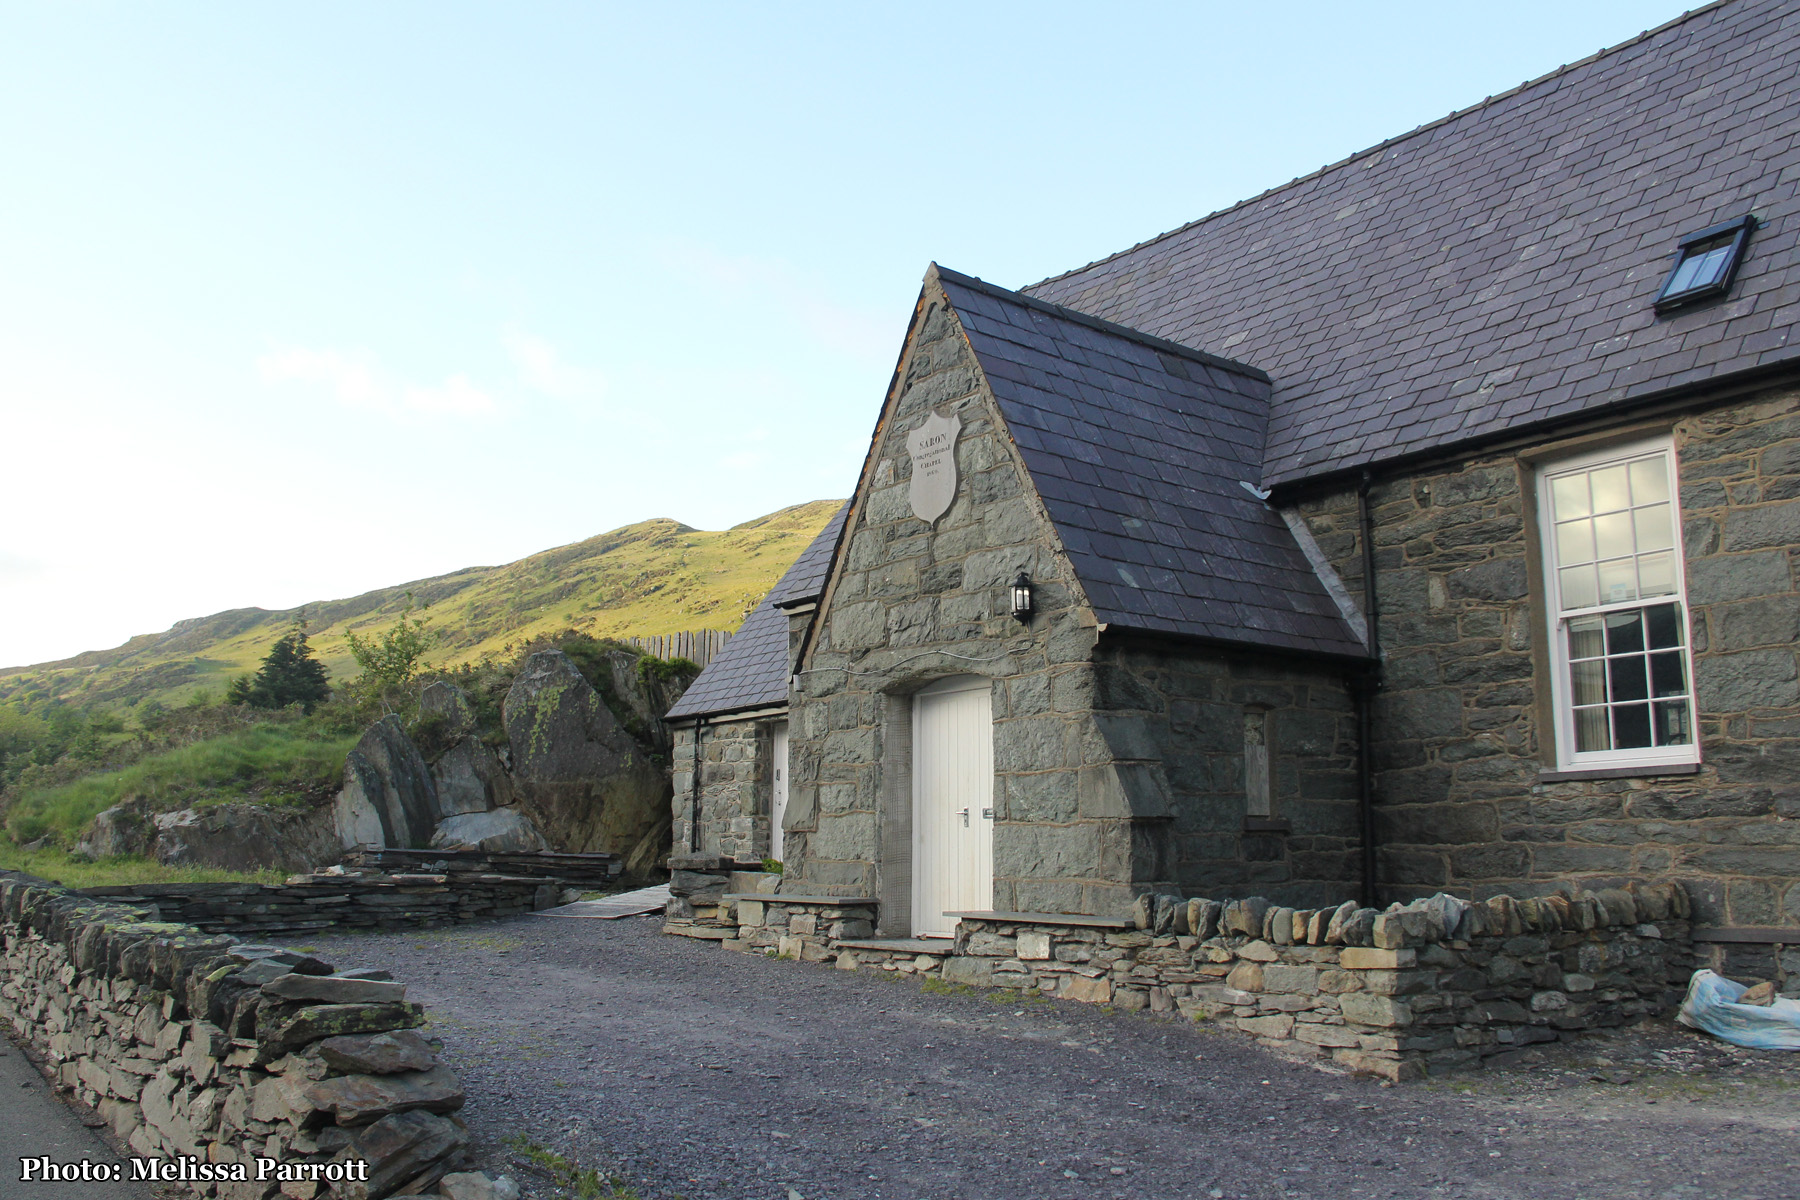 Tyn-y-Maes / Ogwen Valley Bunkhouse: My home for the next 2 nights.  Turns out I had the bunkhouse all to myself, as the groups weren't coming until the weekend. My own private kitchen, living room, bathroom and choice of 15 beds!  I chose the bunk with the view of the mountains and sheep.